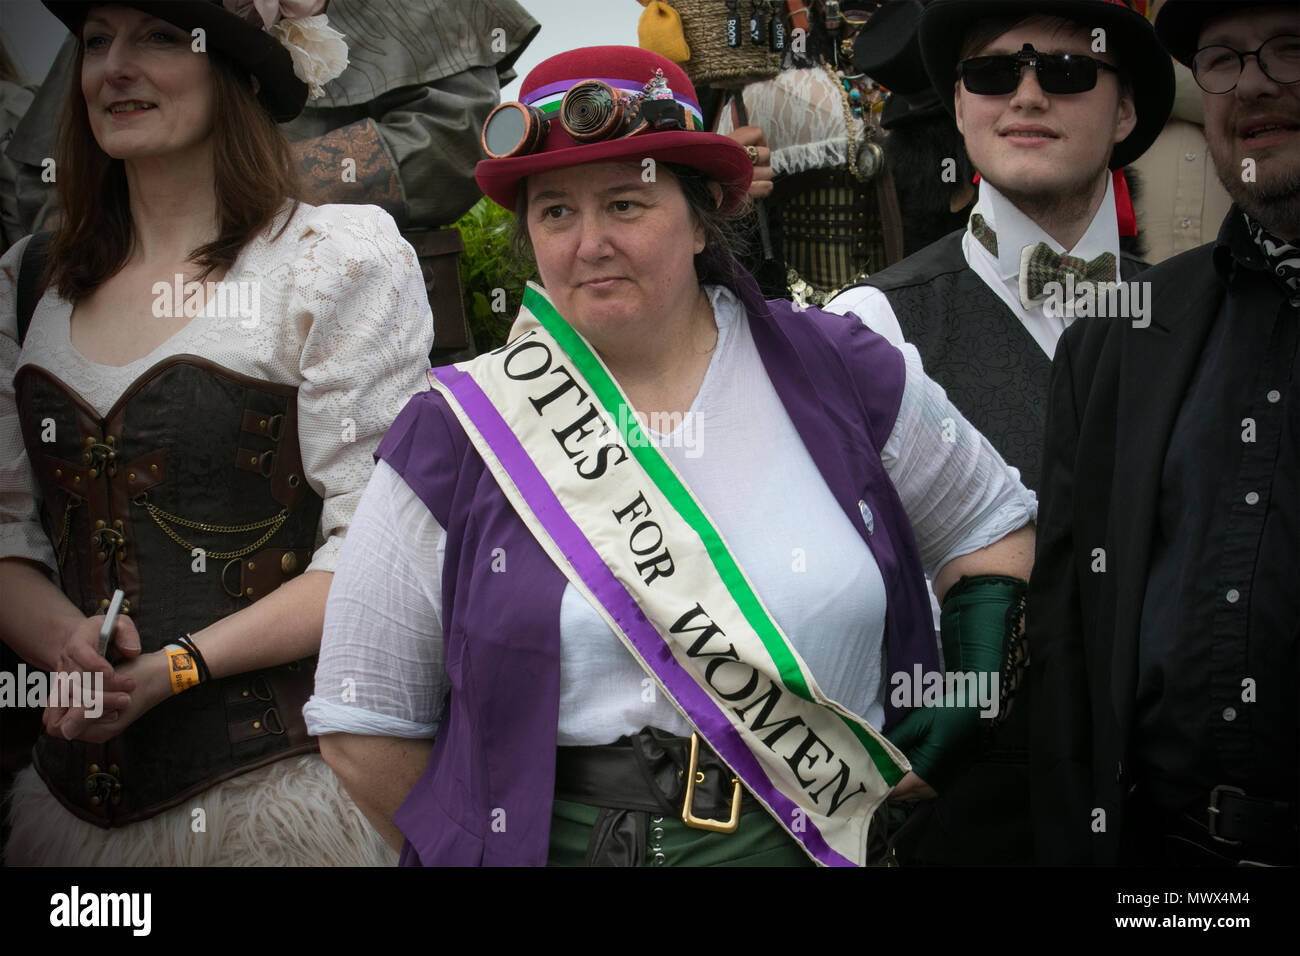 Suffrage in Lancashire, UK. 2nd June 2018.  A Splendid Day Out, a full weekend of Steampunk entertainments in the charming Victorian seaside retreat of Morecambe Credit: MediaWorldImages/Alamy Live News Stock Photo